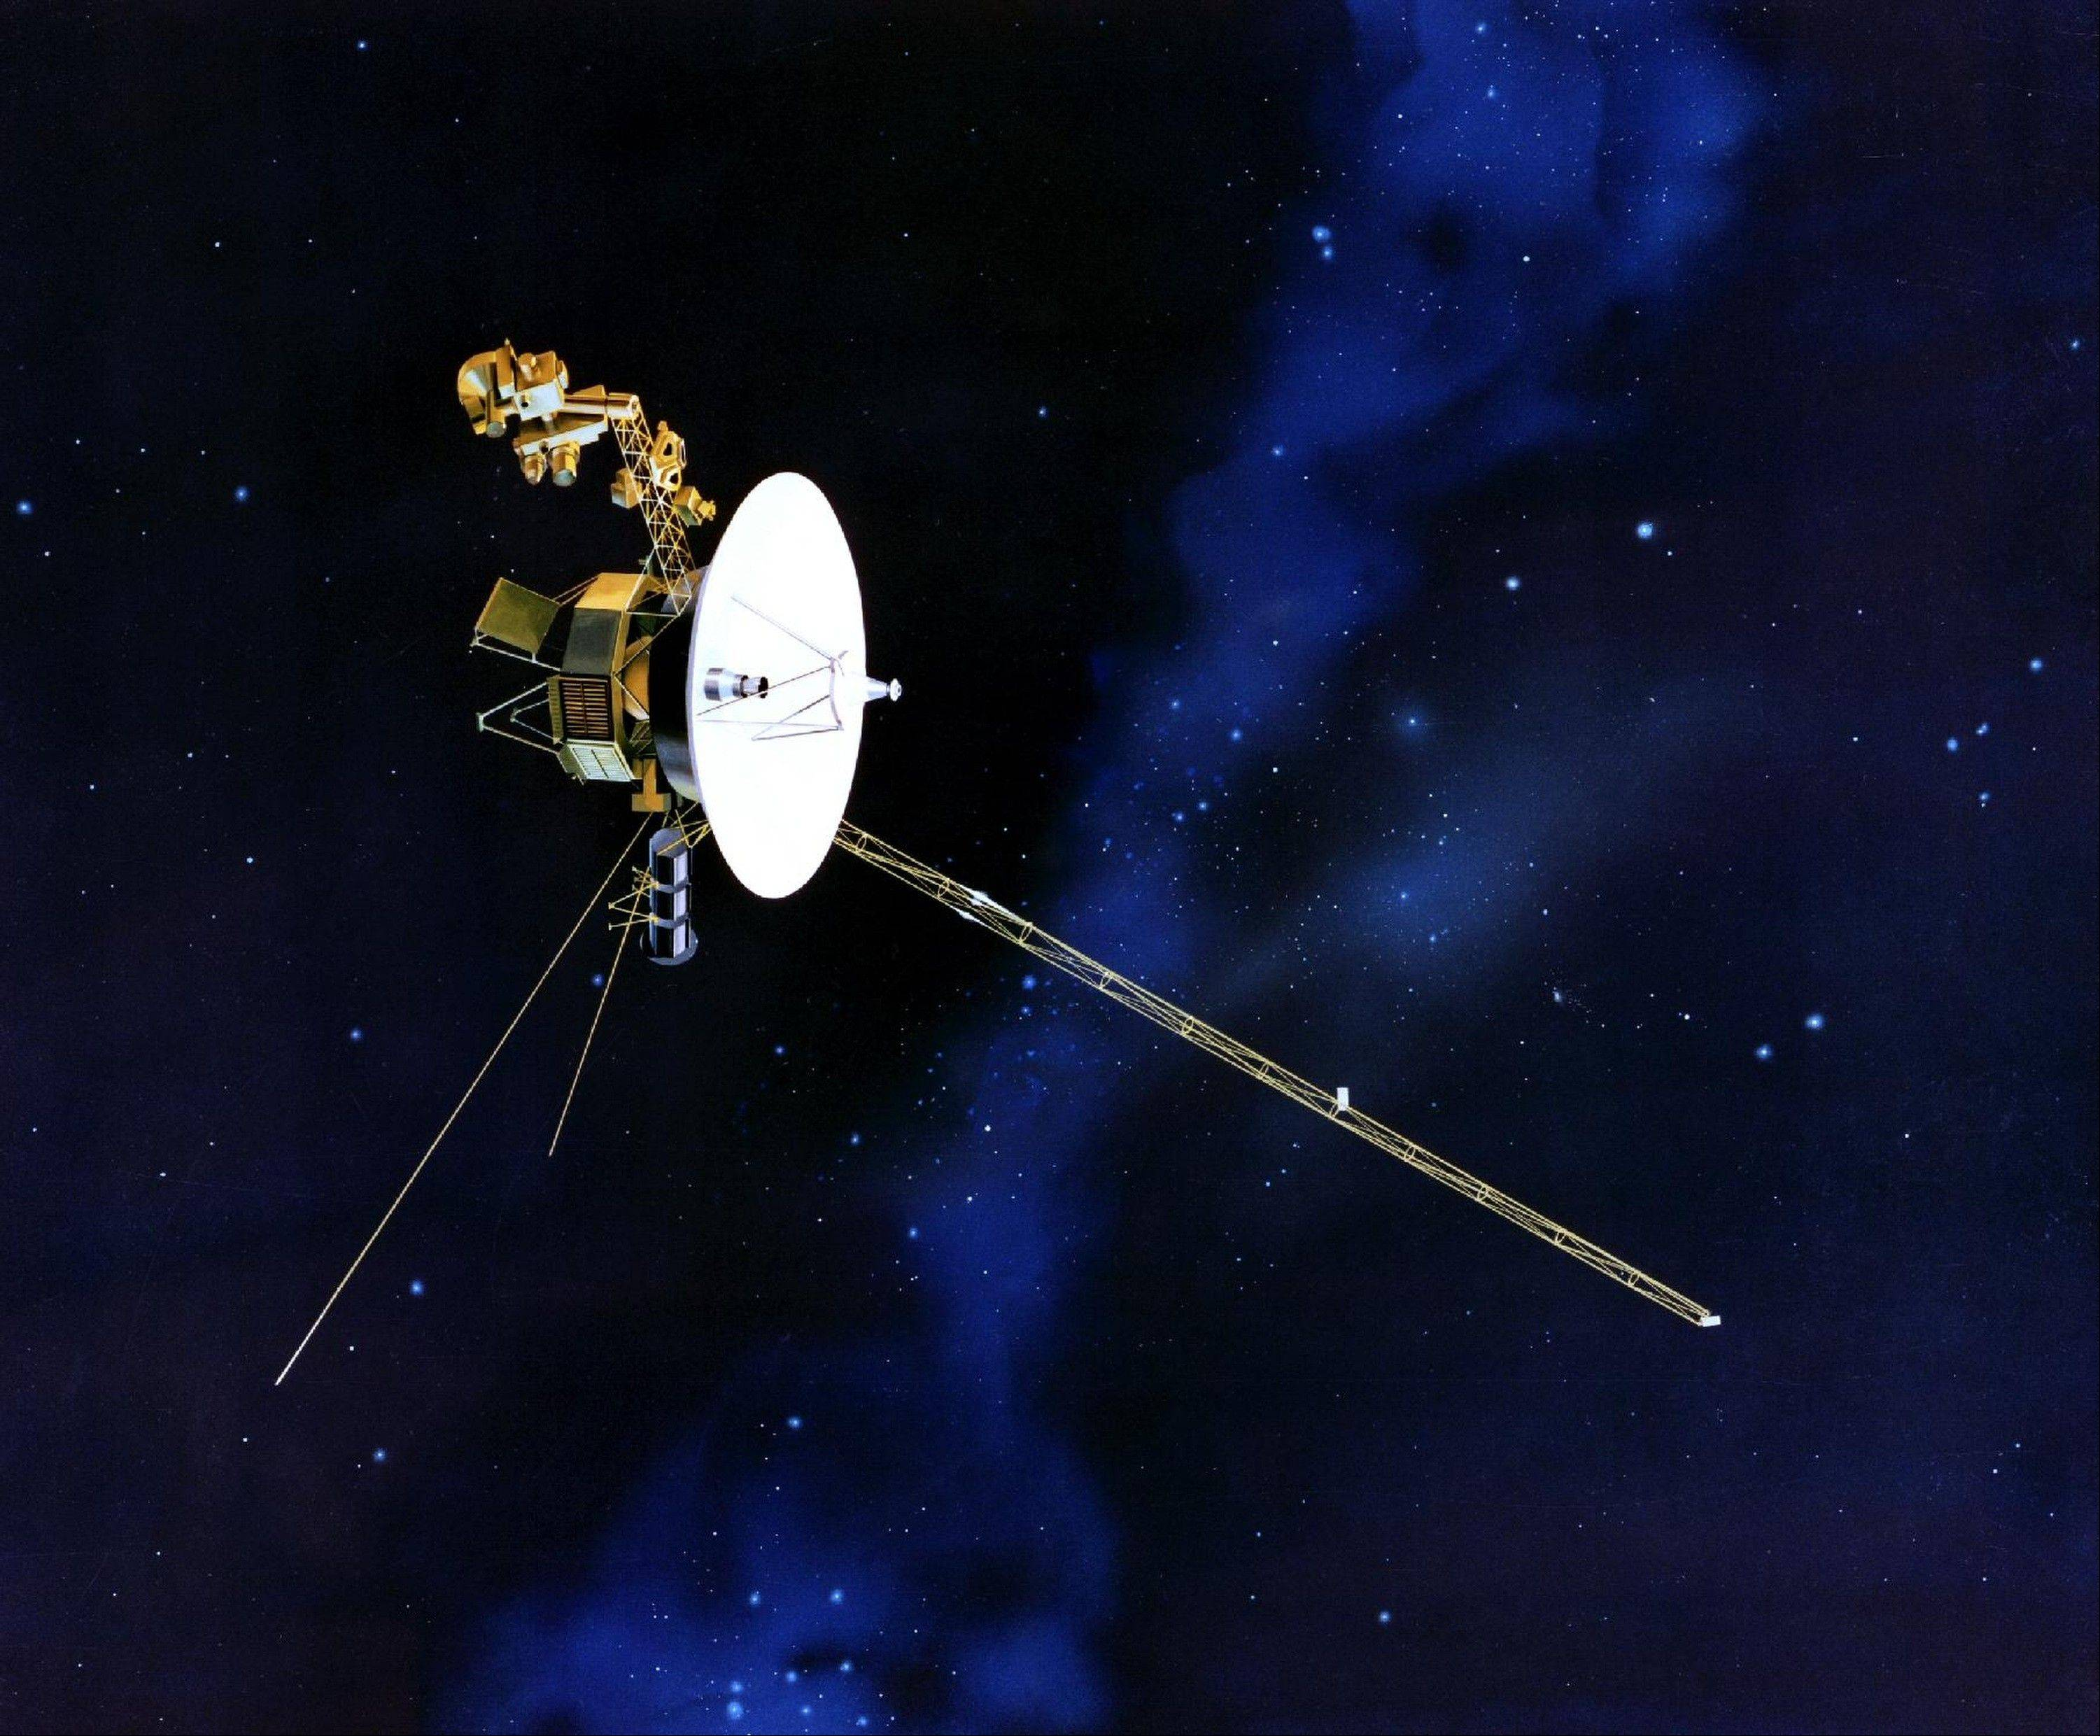 This artist's rendering provided by NASA shows the Voyager spacecraft. Launched in 1977, the twin spacecraft are exploring the edge of the solar system.